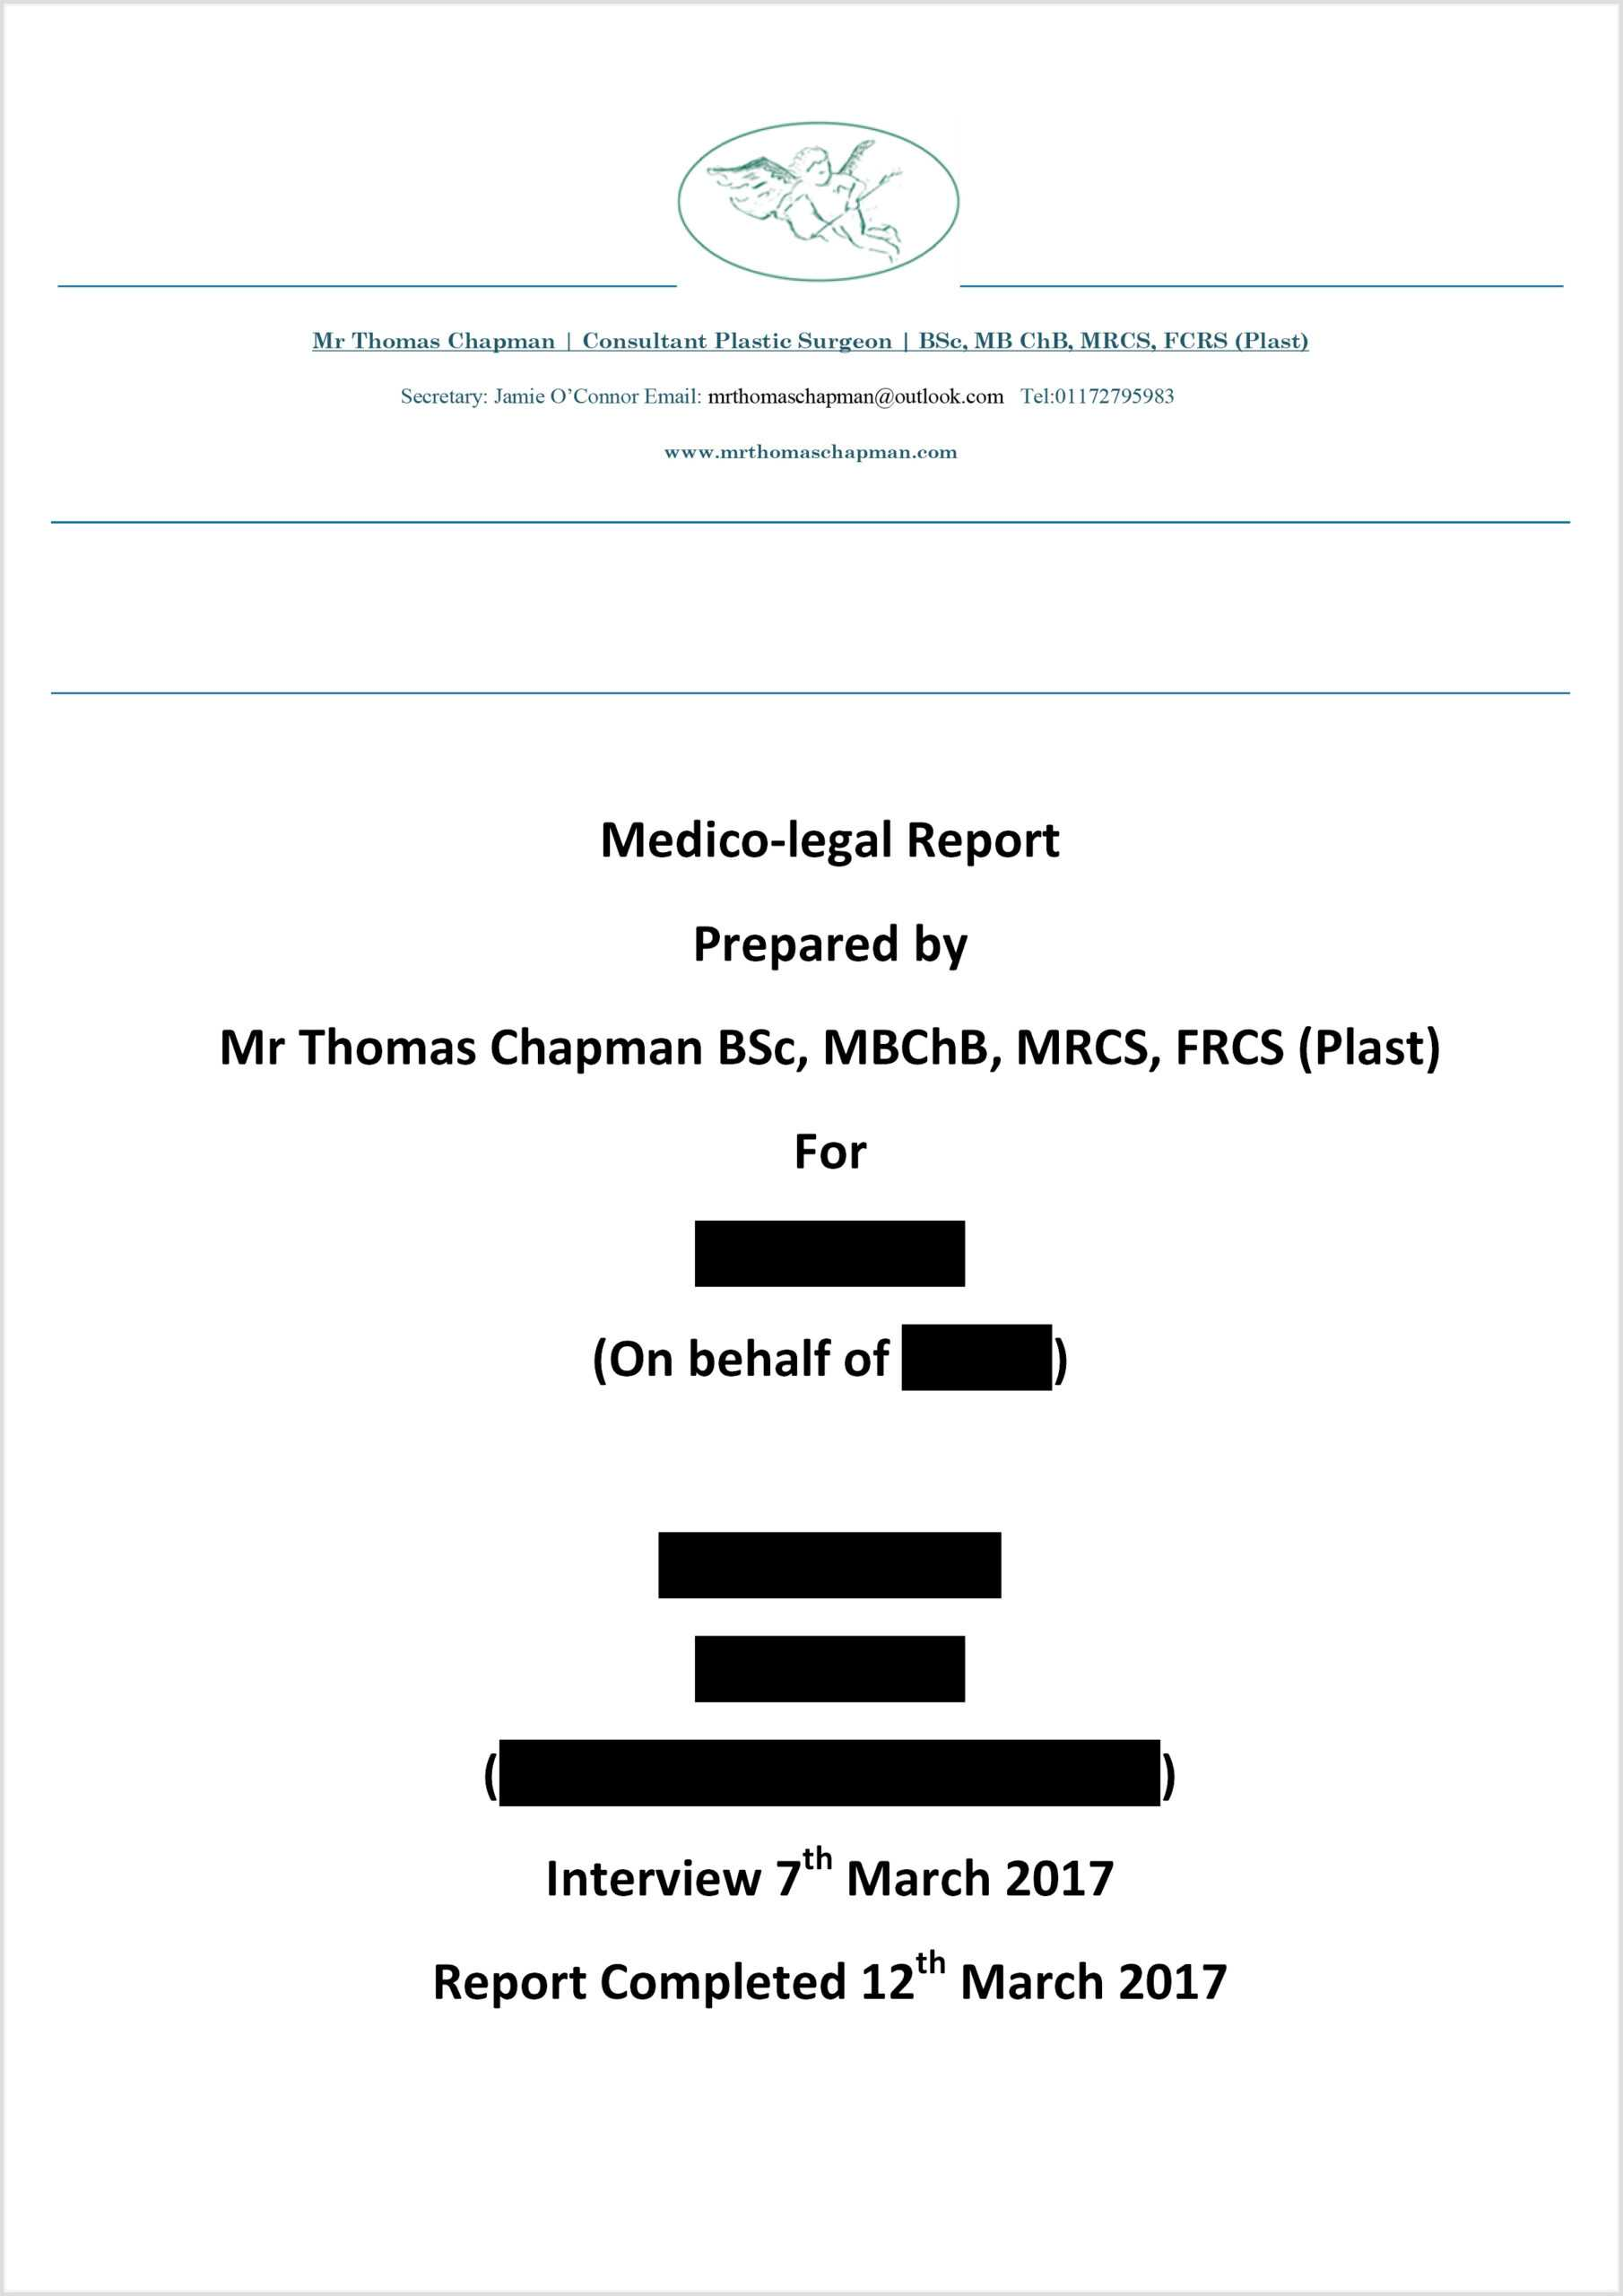 Medicolegal Reporting - Mr Thomas Chapman Regarding Medical Legal Report Template